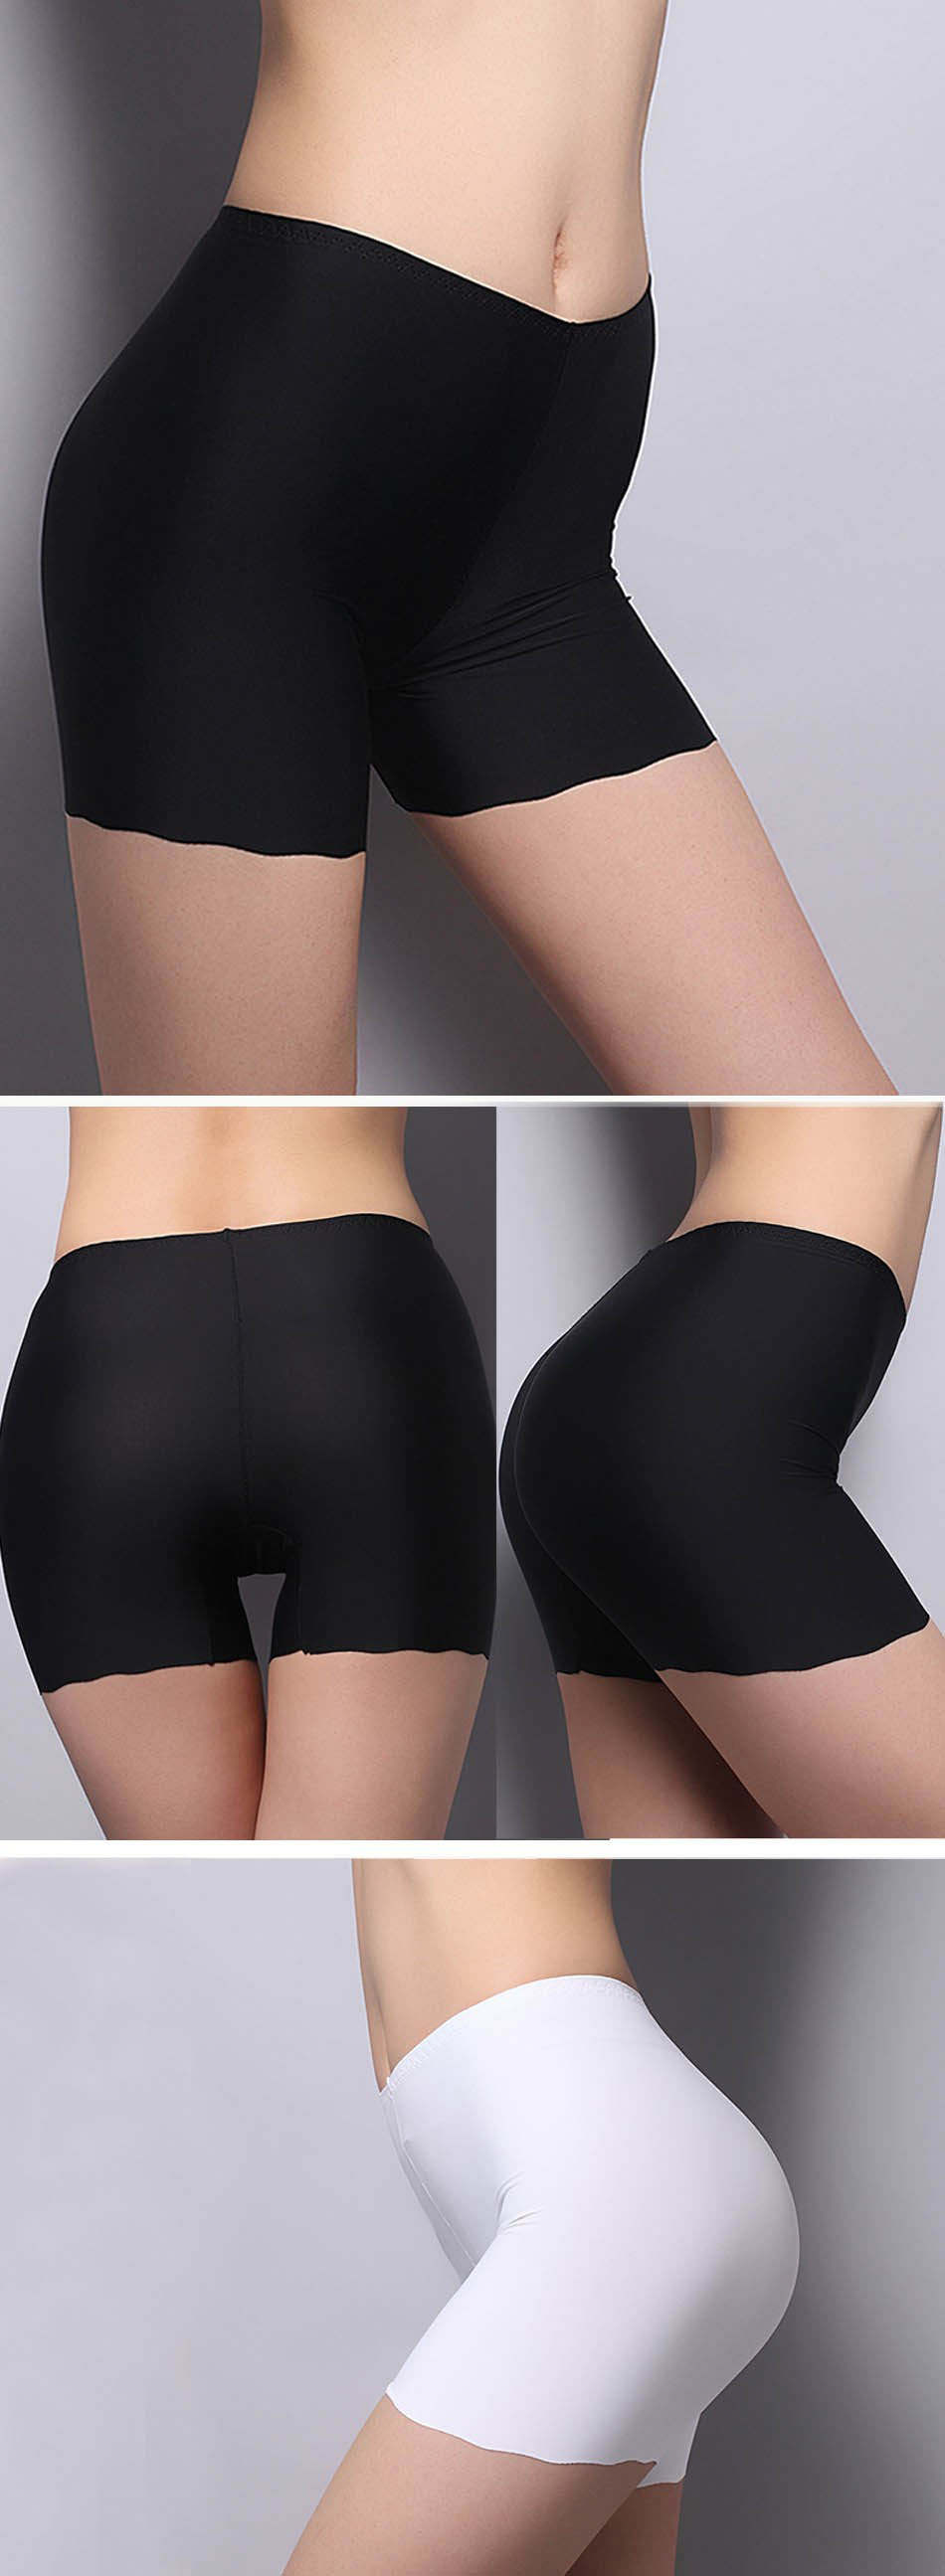 New 2017 Women Safety Shorts Female Seamless Legging Pants Casual Women's Summer Briefs Ice Silk Underwear Boxer 10